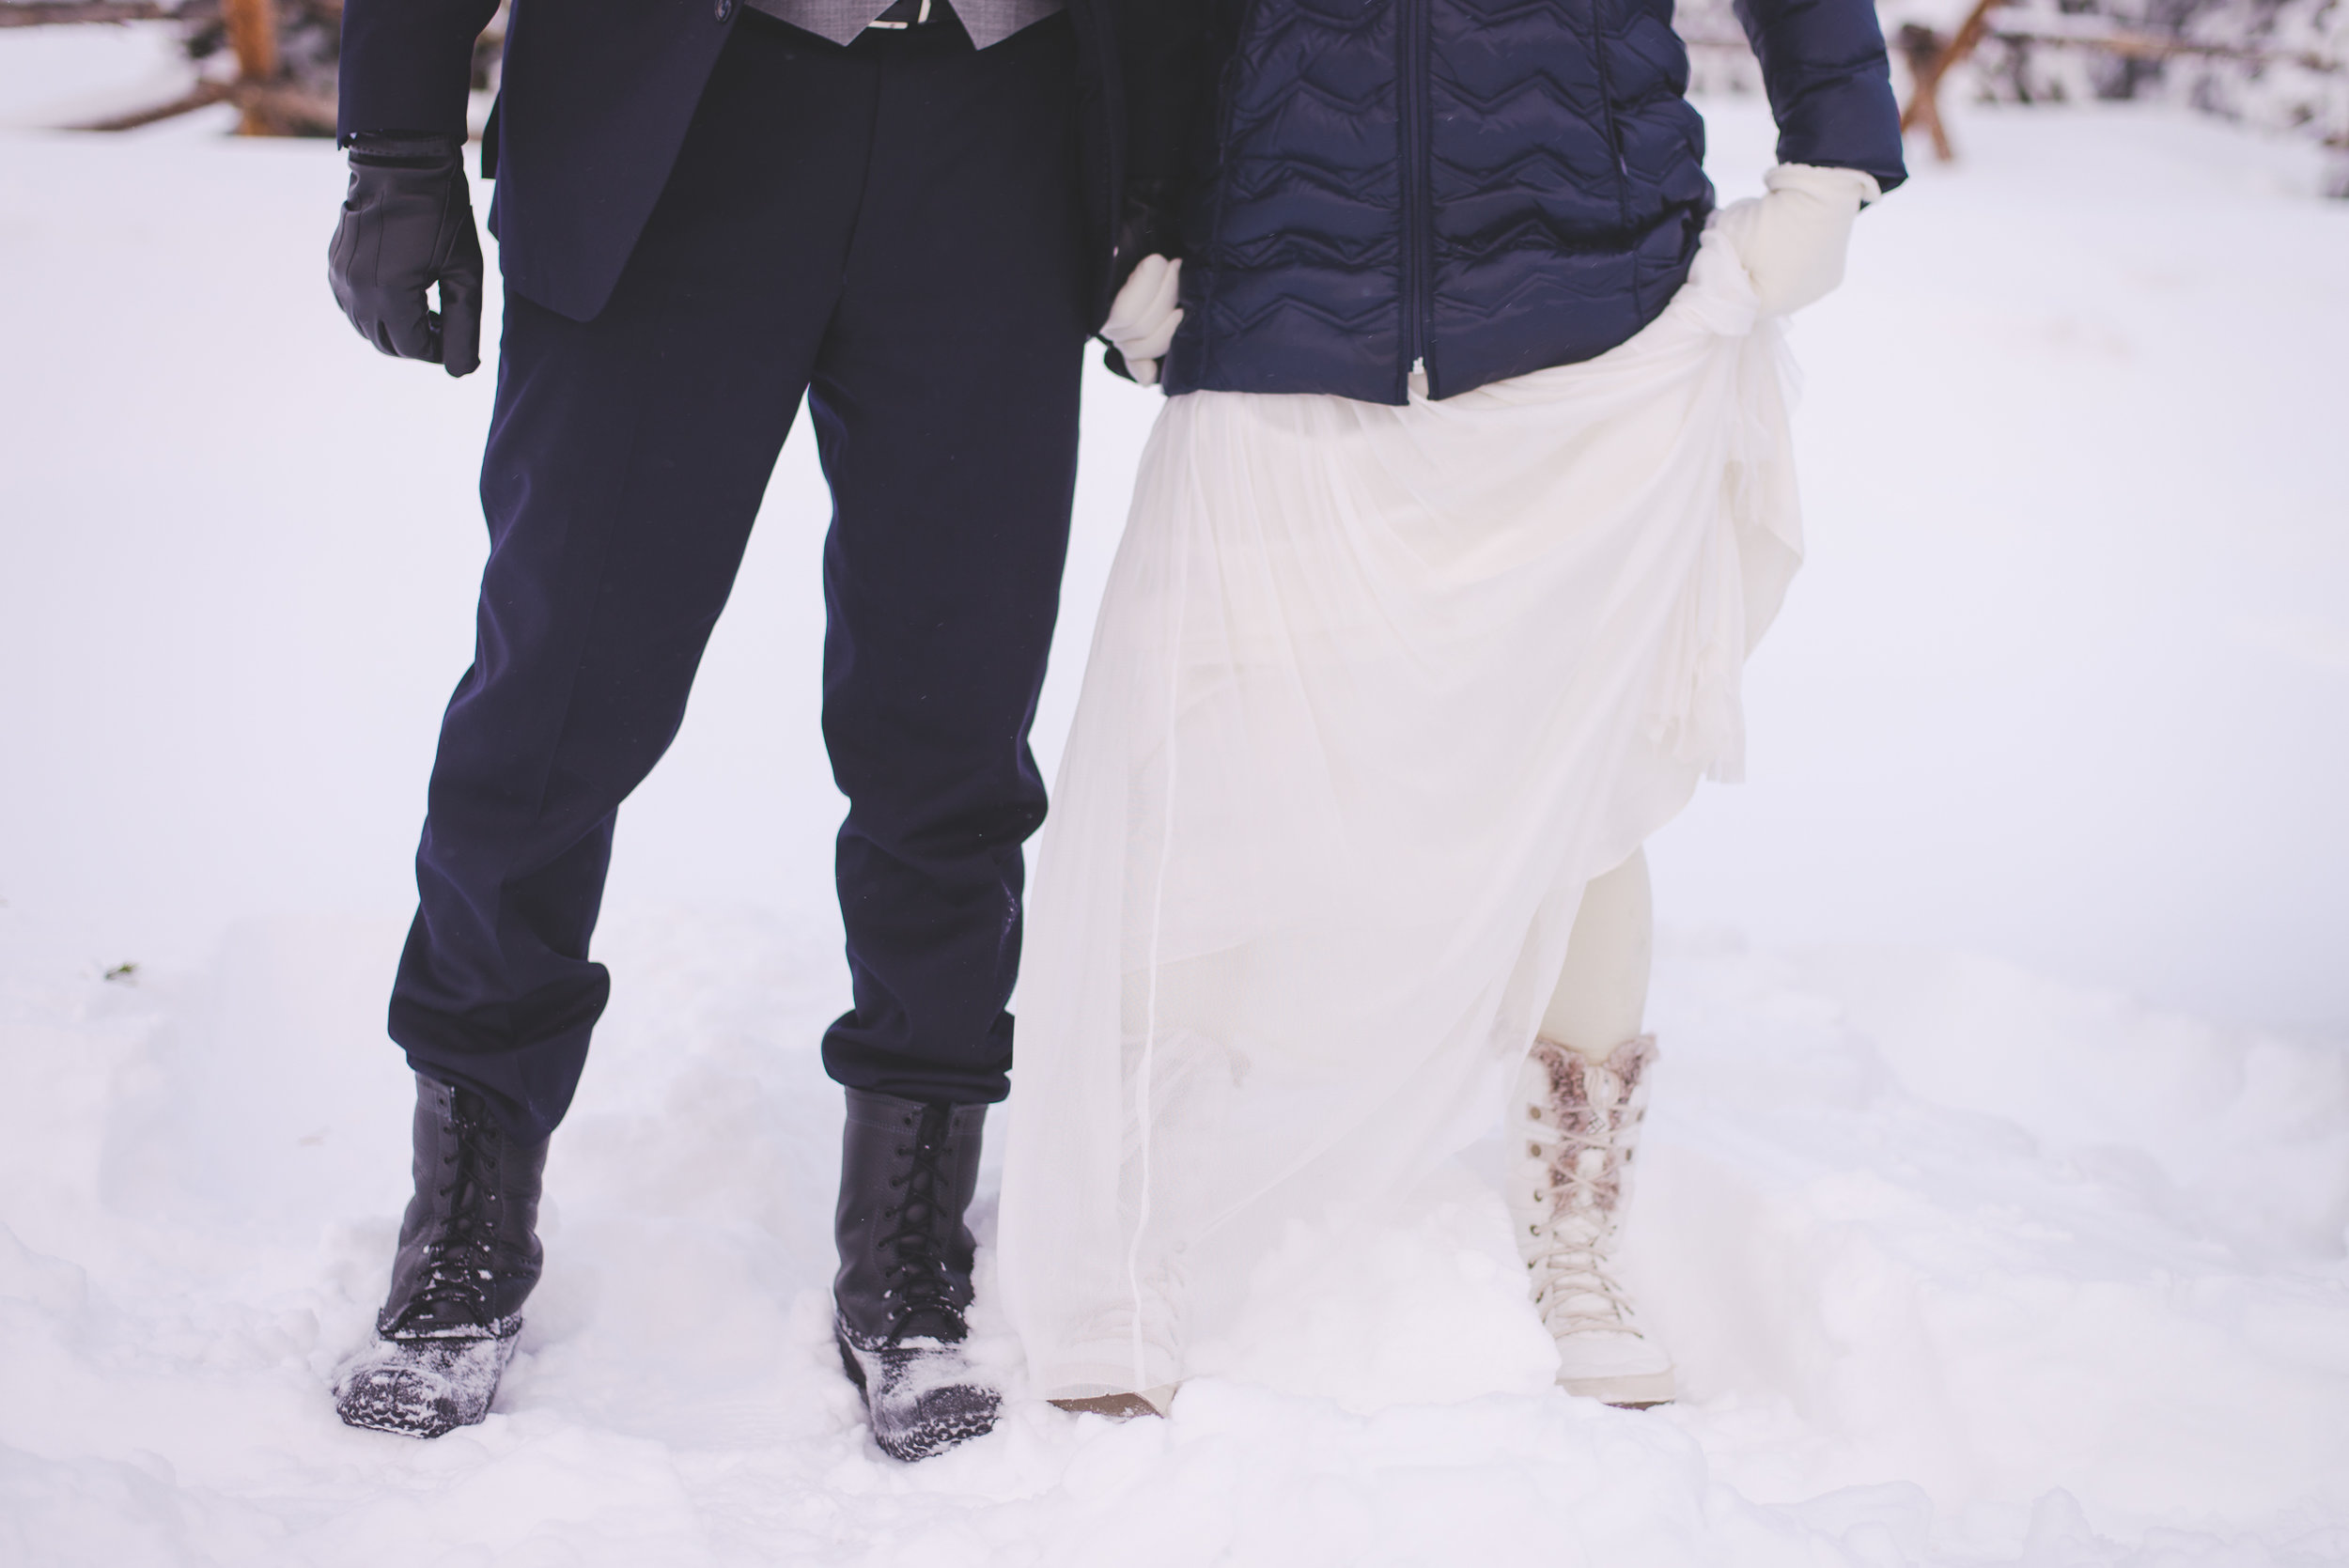 this destination bride and groom came prepared for snow - and good thing they did! after over 18 inches of new snow fell, we trudged through it all for the best shot | photo by keeping composure photography